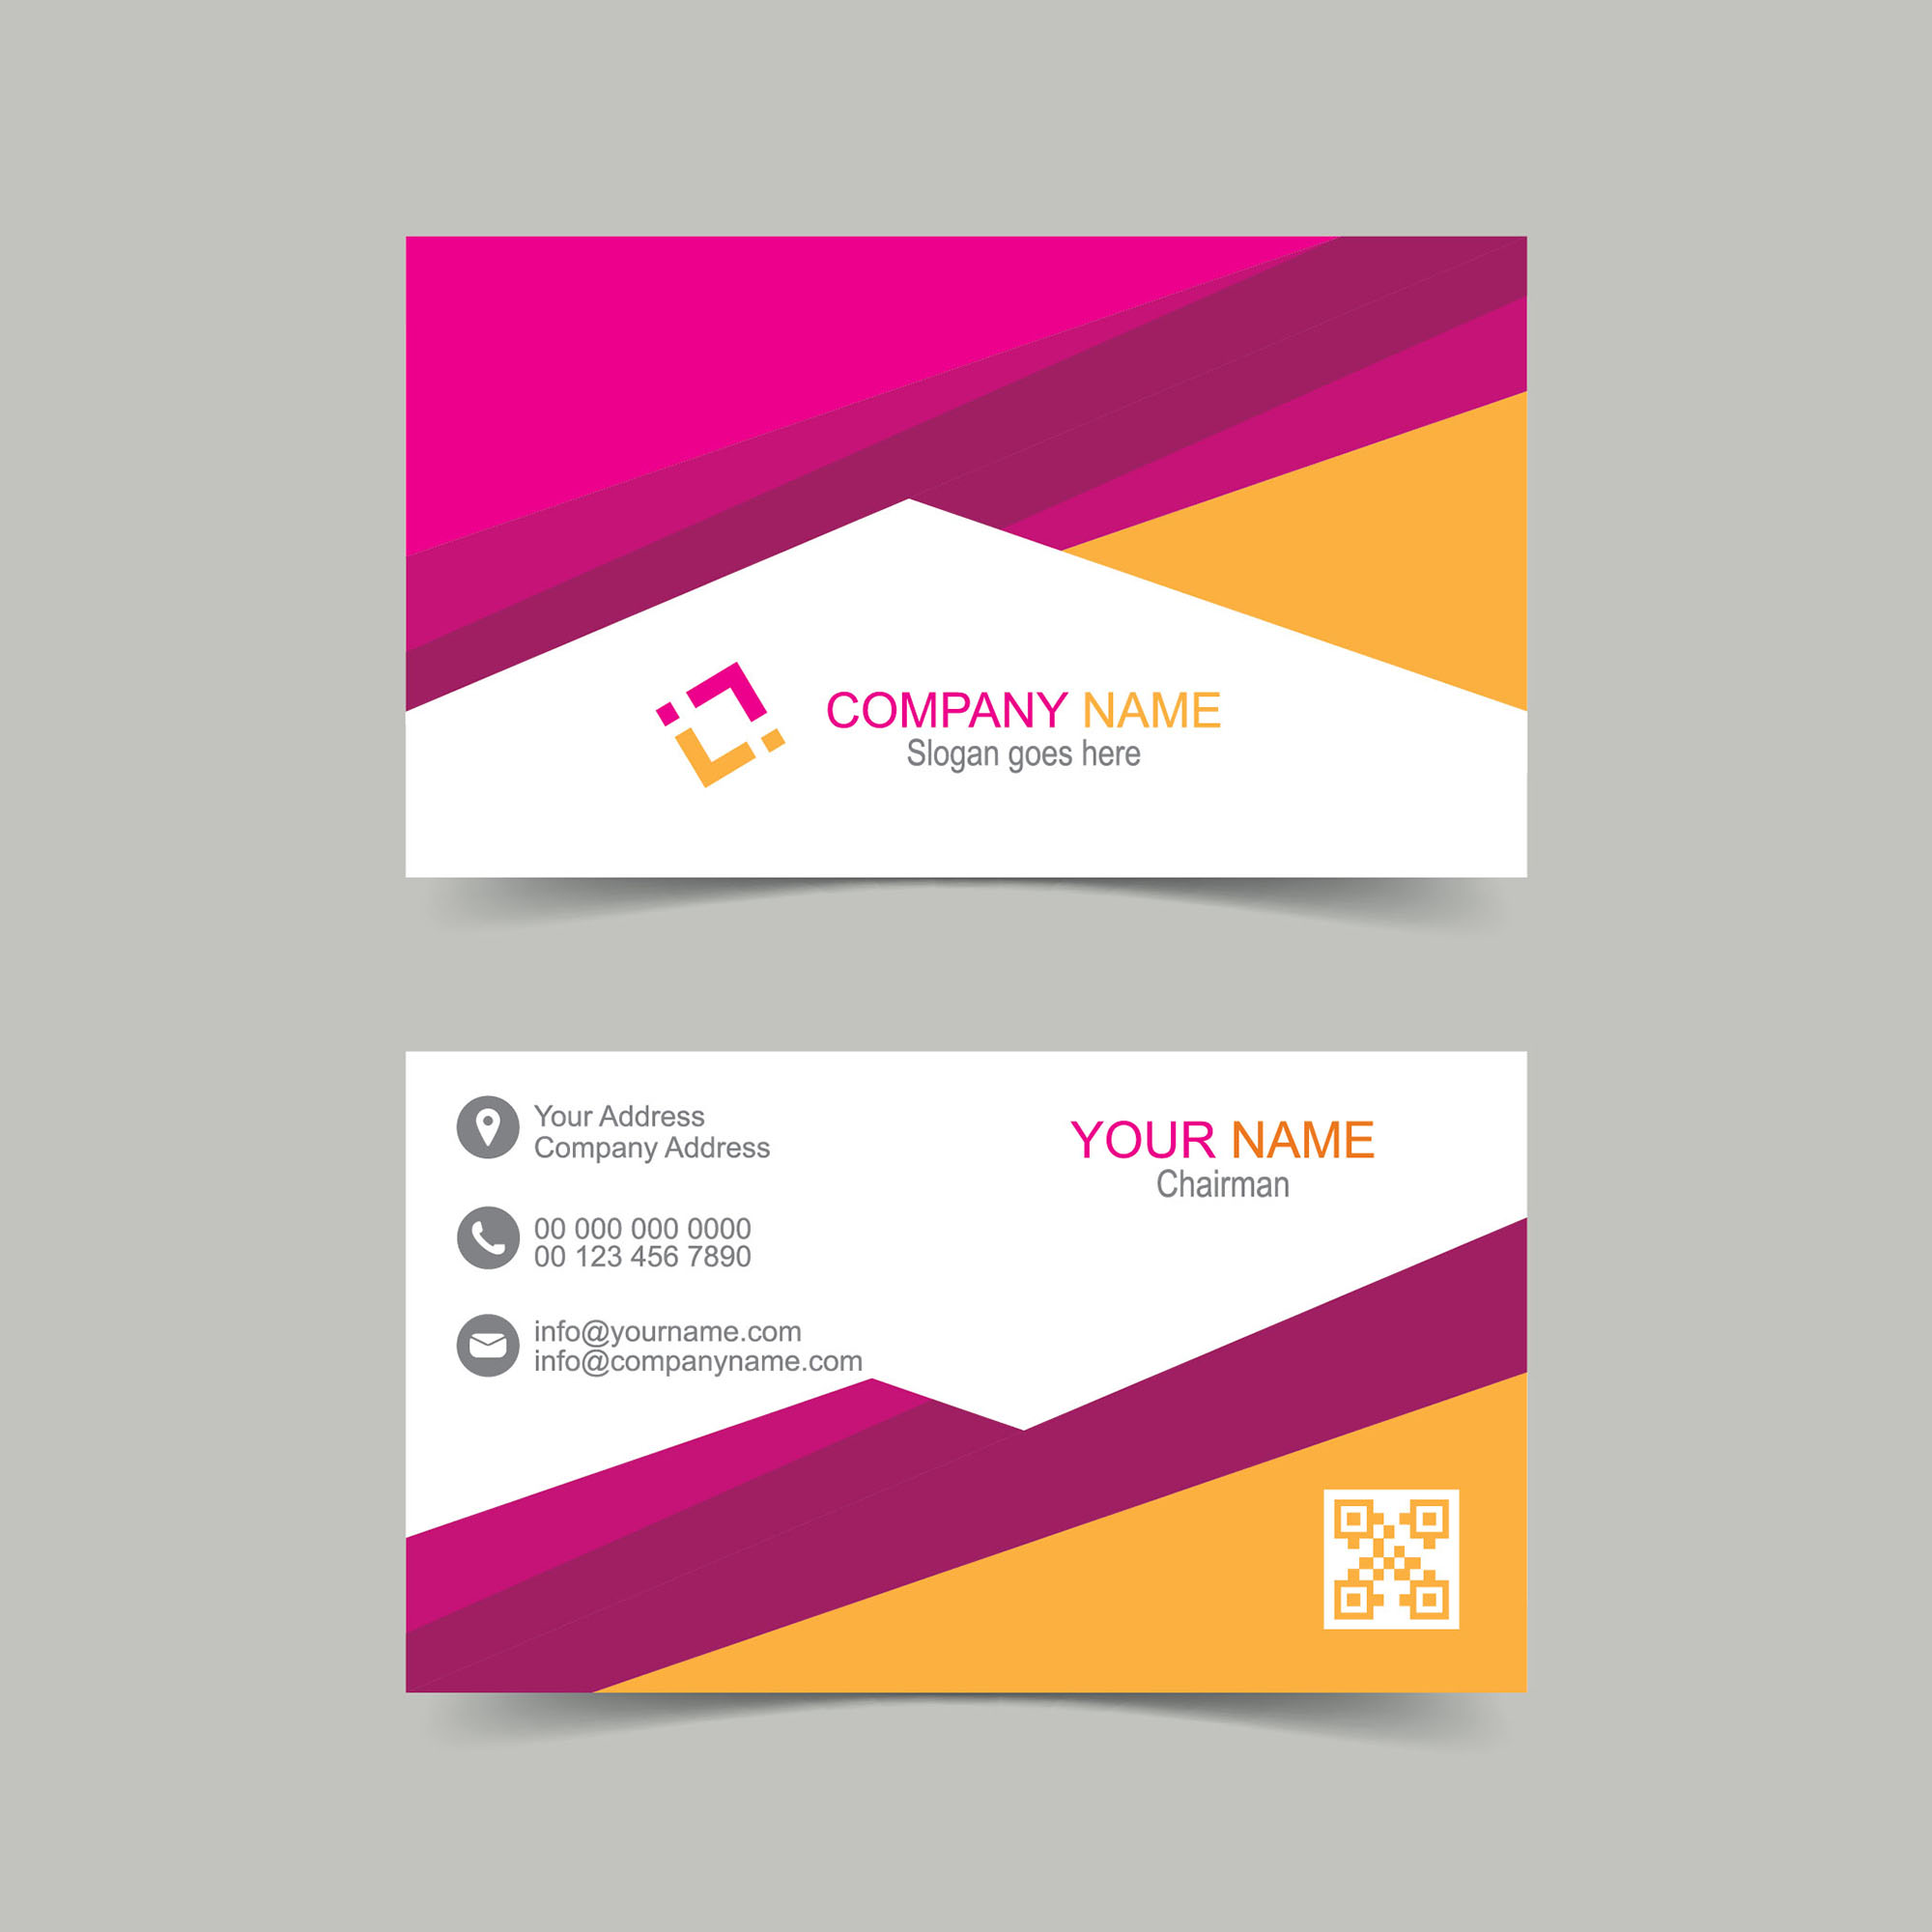 Vector business card design free download wisxi business card business cards business card design business card template design templates wajeb Images